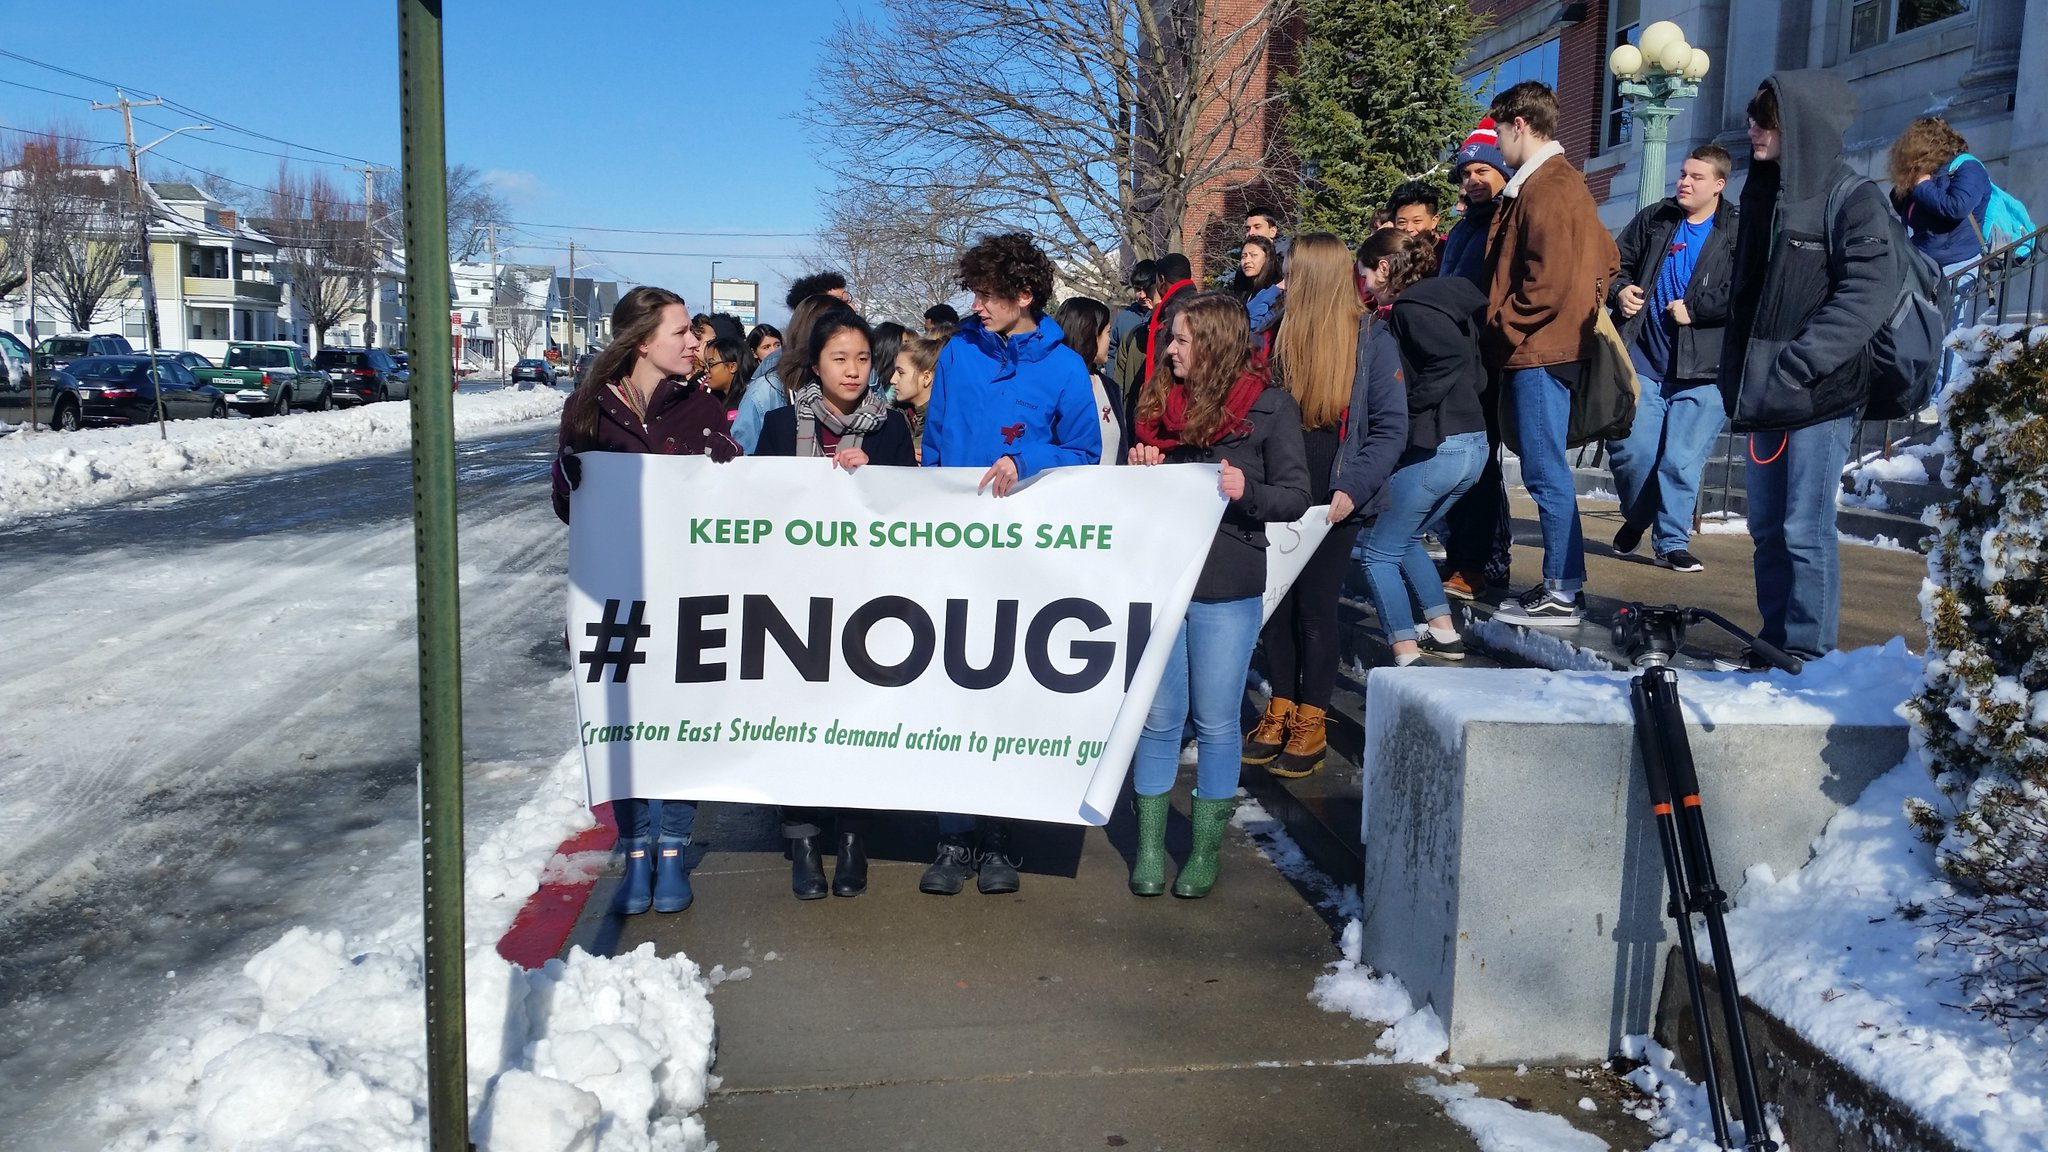 Students at Cranston High School East hold a banner demanding action to prevent gun violence during National School Walkout on Wednesday, March 14, 2018. (WJAR)